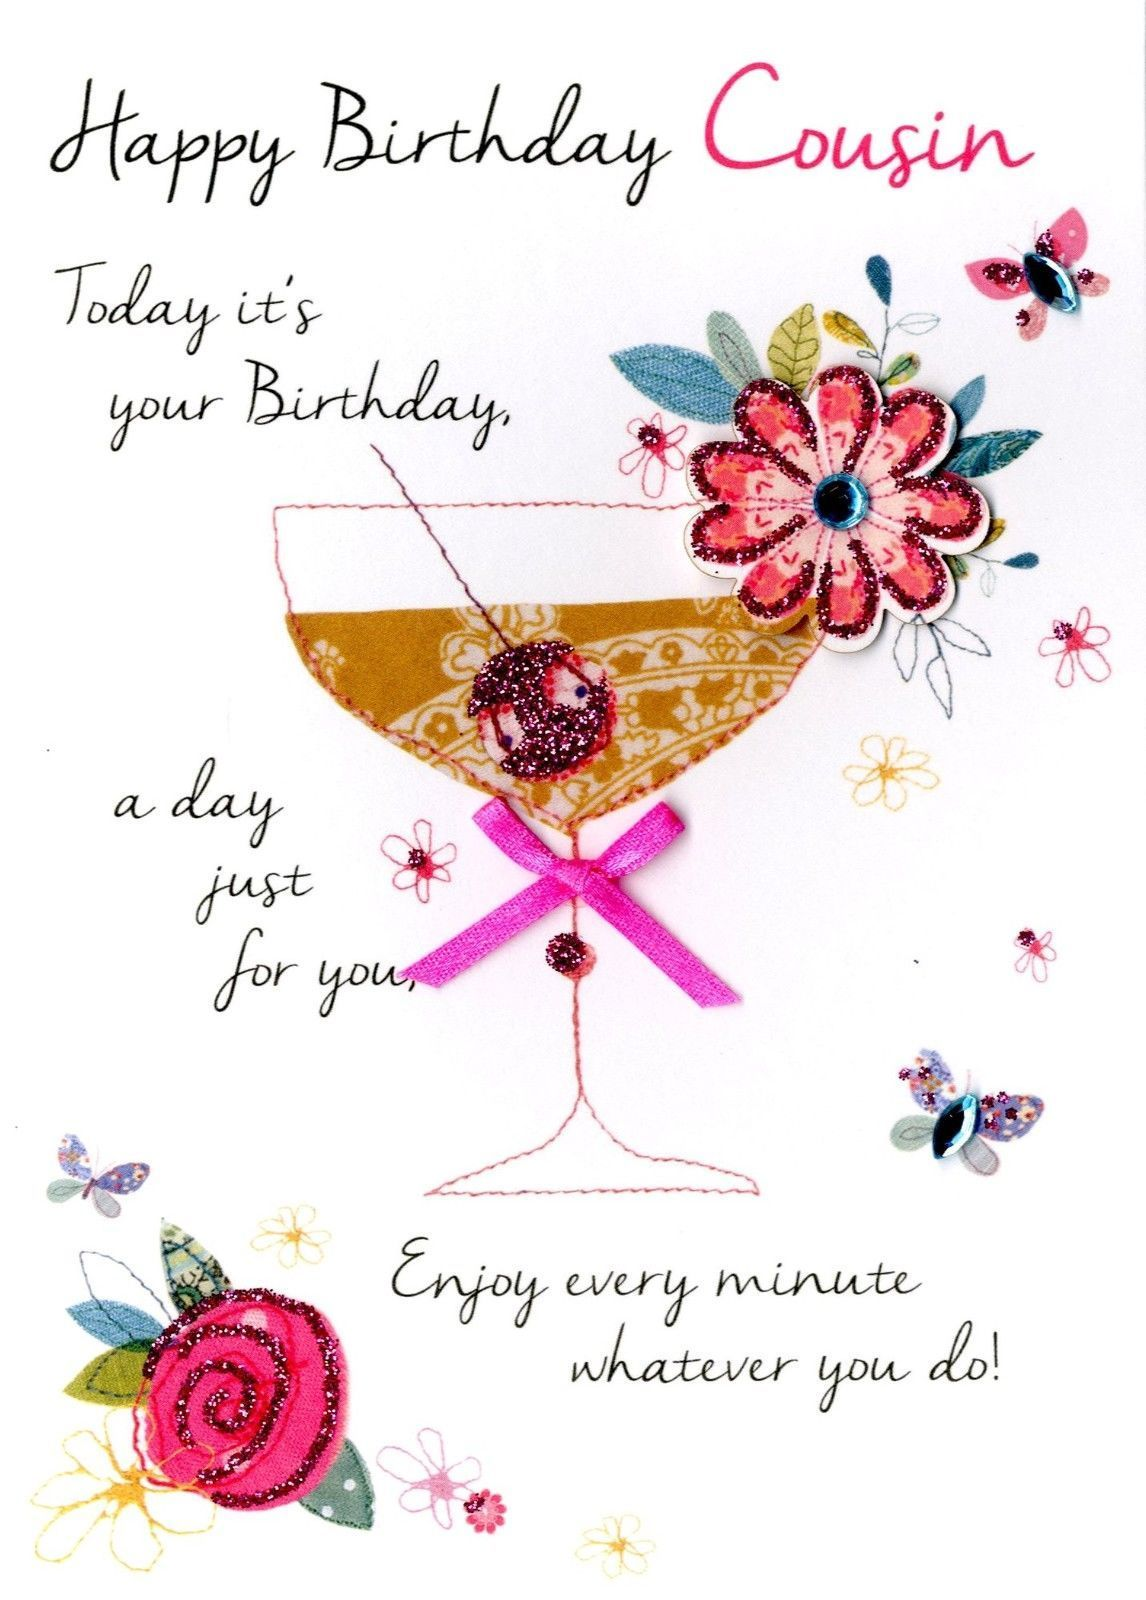 2 99 Gbp Female Cousin Happy Birthday Greeting Card Second Nature Just To Say Cards Ebay Happy Birthday Cousin Happy Birthday Greeting Card Cousin Birthday